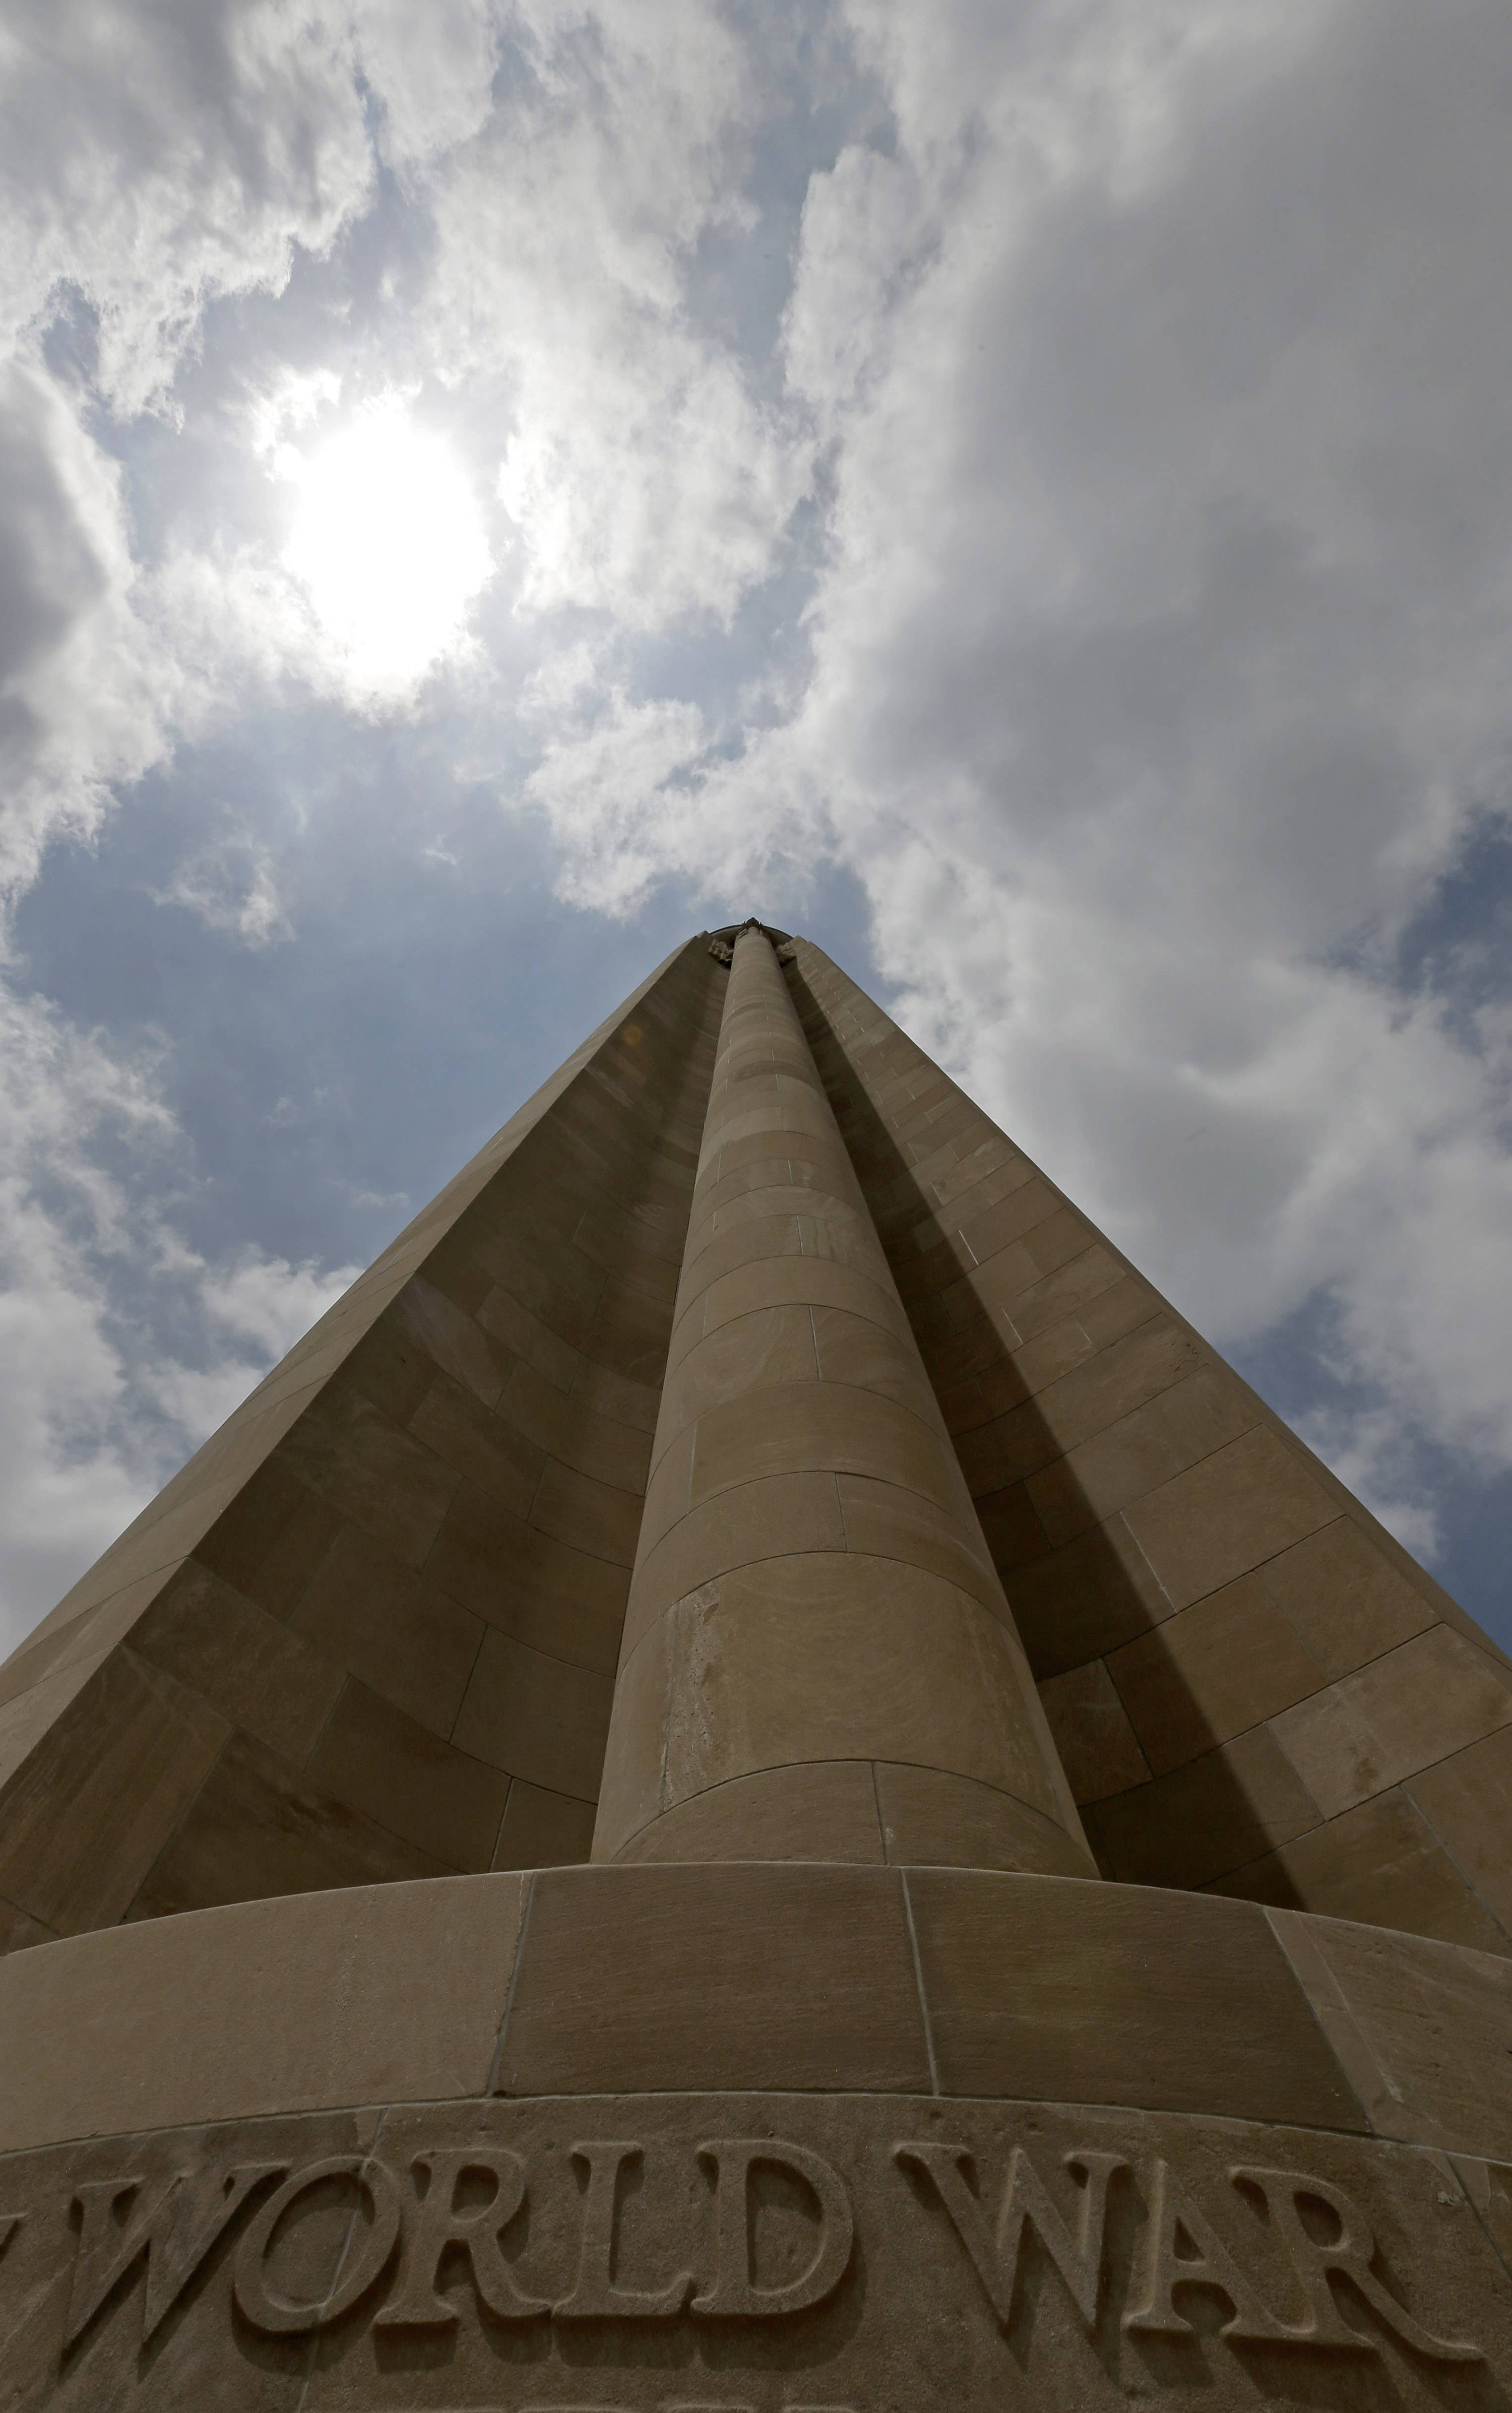 The Liberty Memorial Tower rises 217 feet above the plaza at Kansas City's National World War I Museum, which focuses on the century-old Great War.